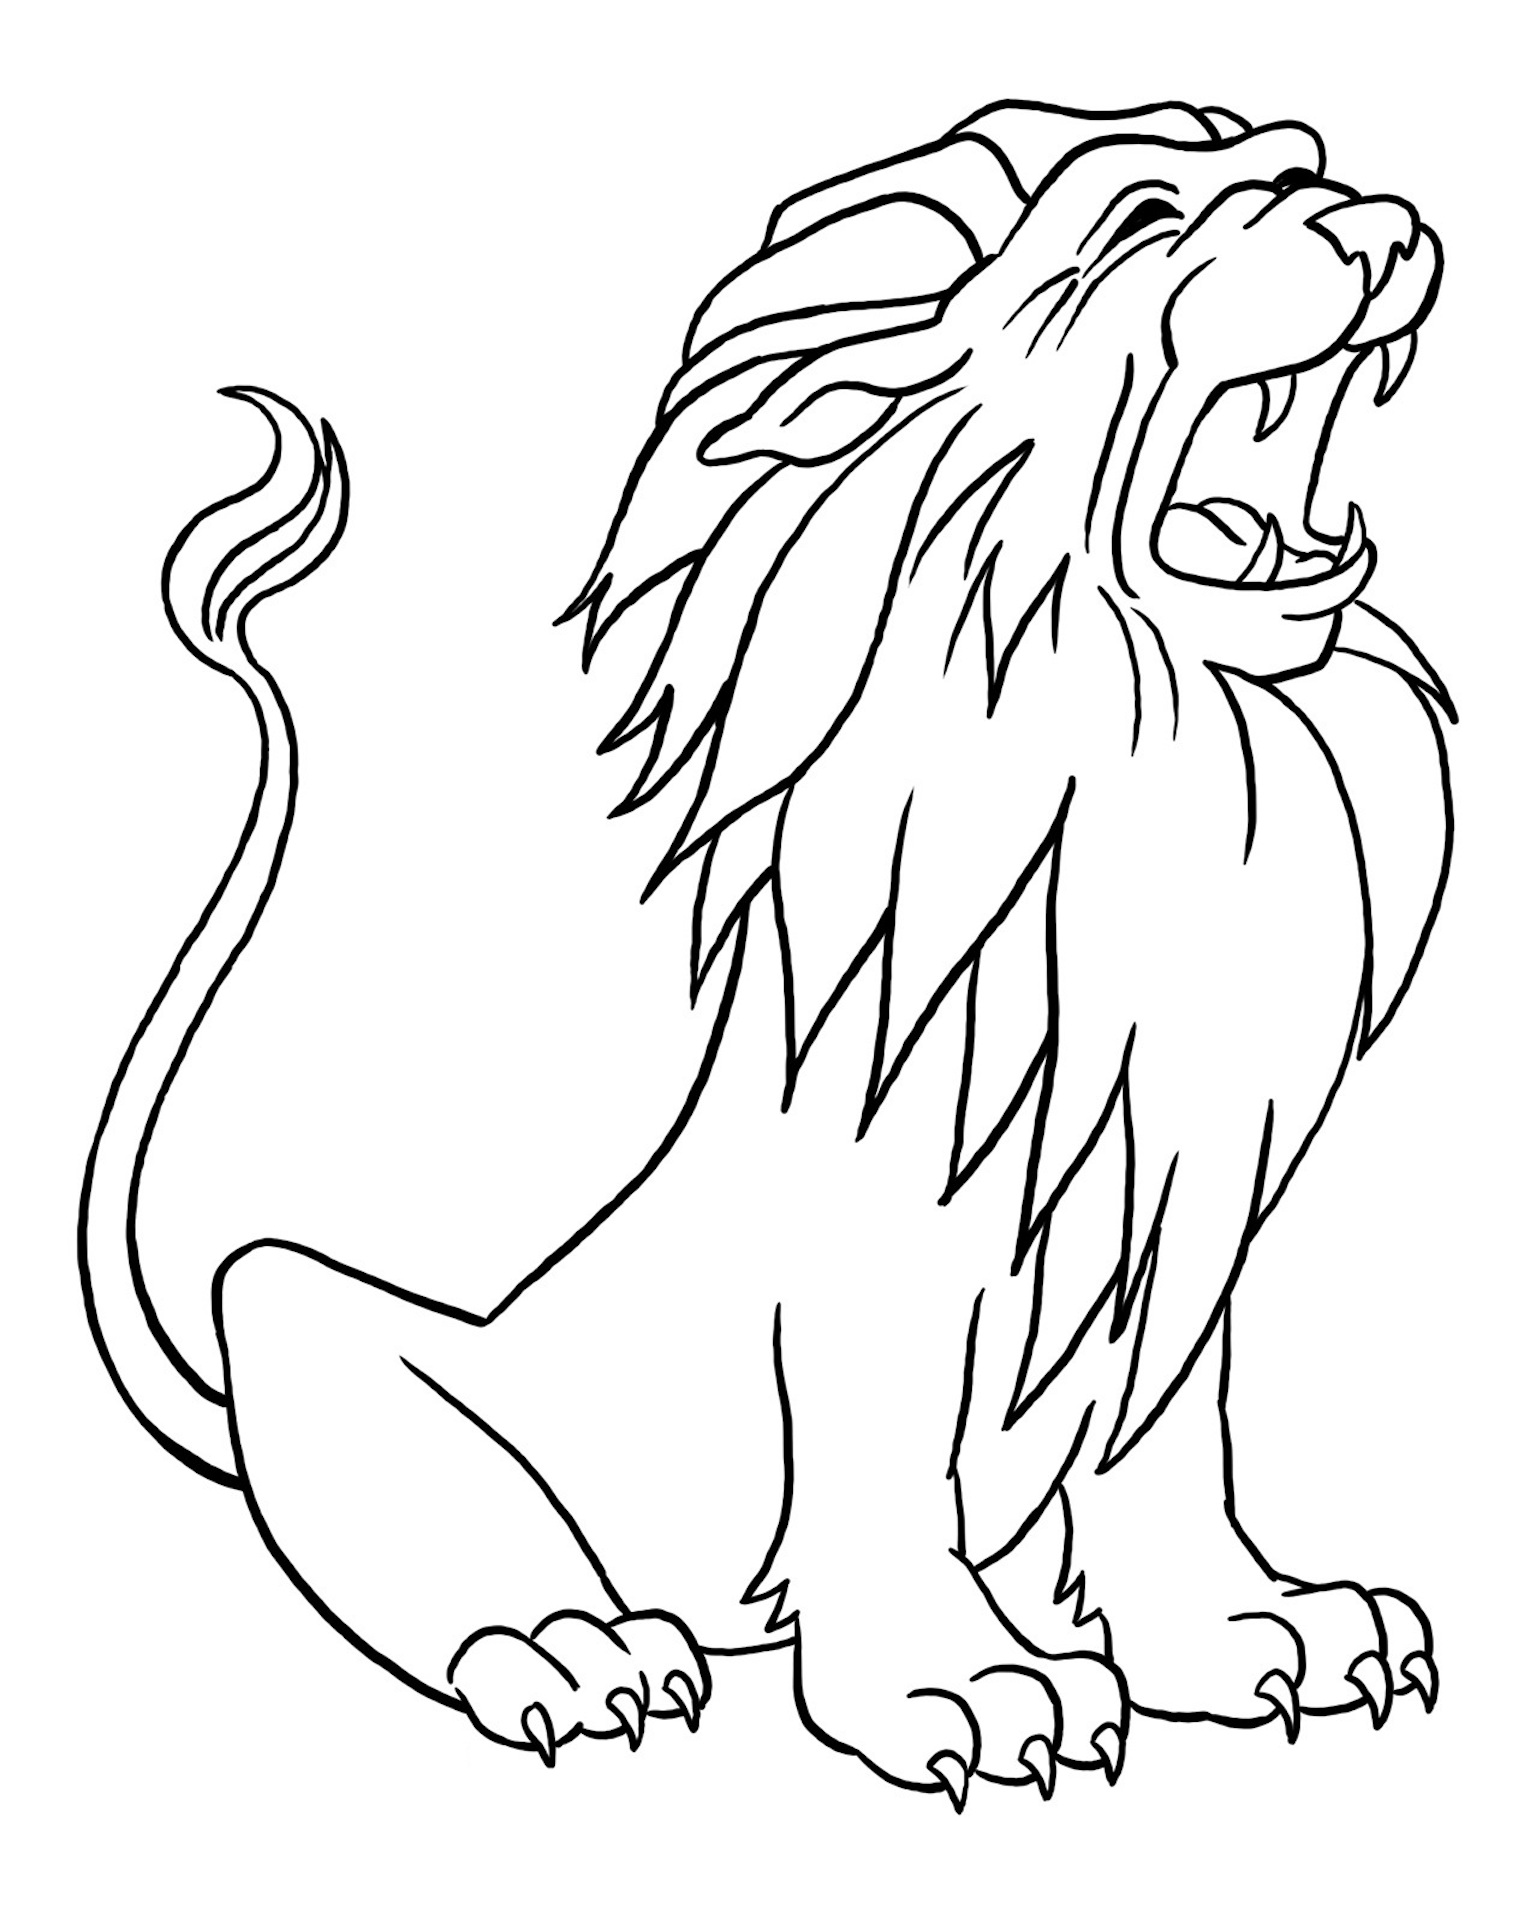 coloring pages of lion lion head animals coloring pages 100 mandalas zen coloring of pages lion